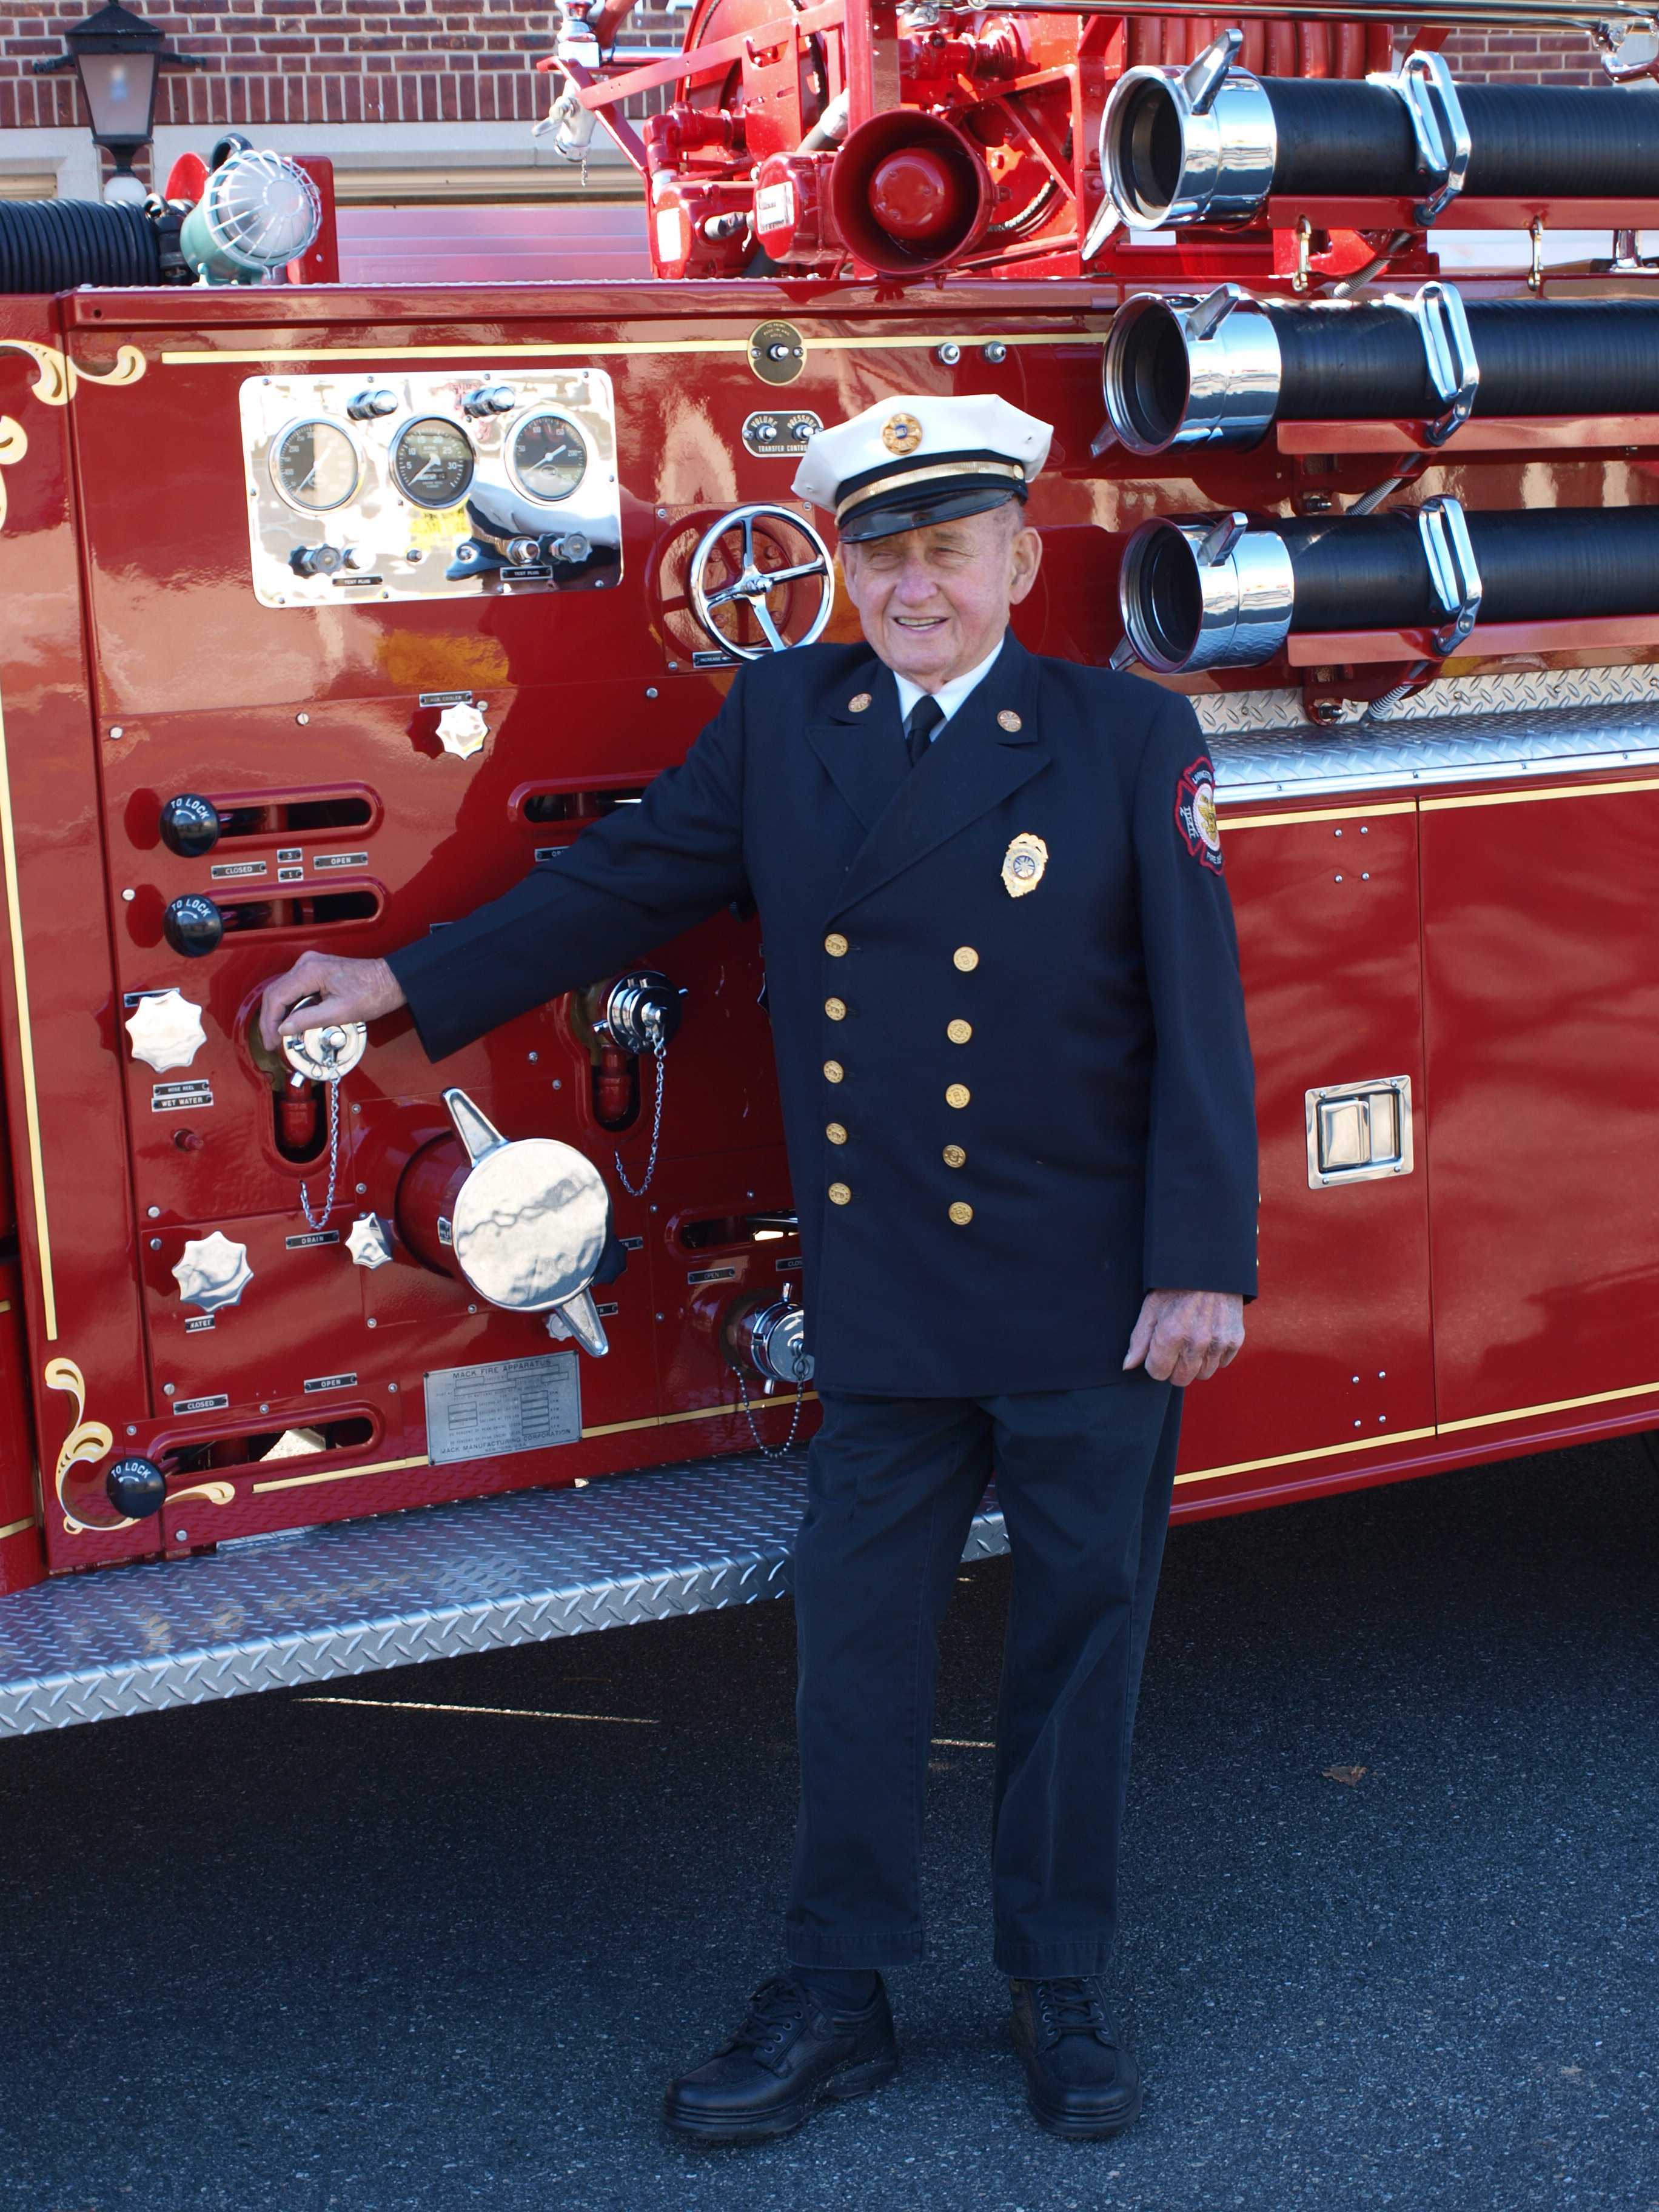 Chief Charlie Schilling dressed in uniform, with LFD Fire Truck